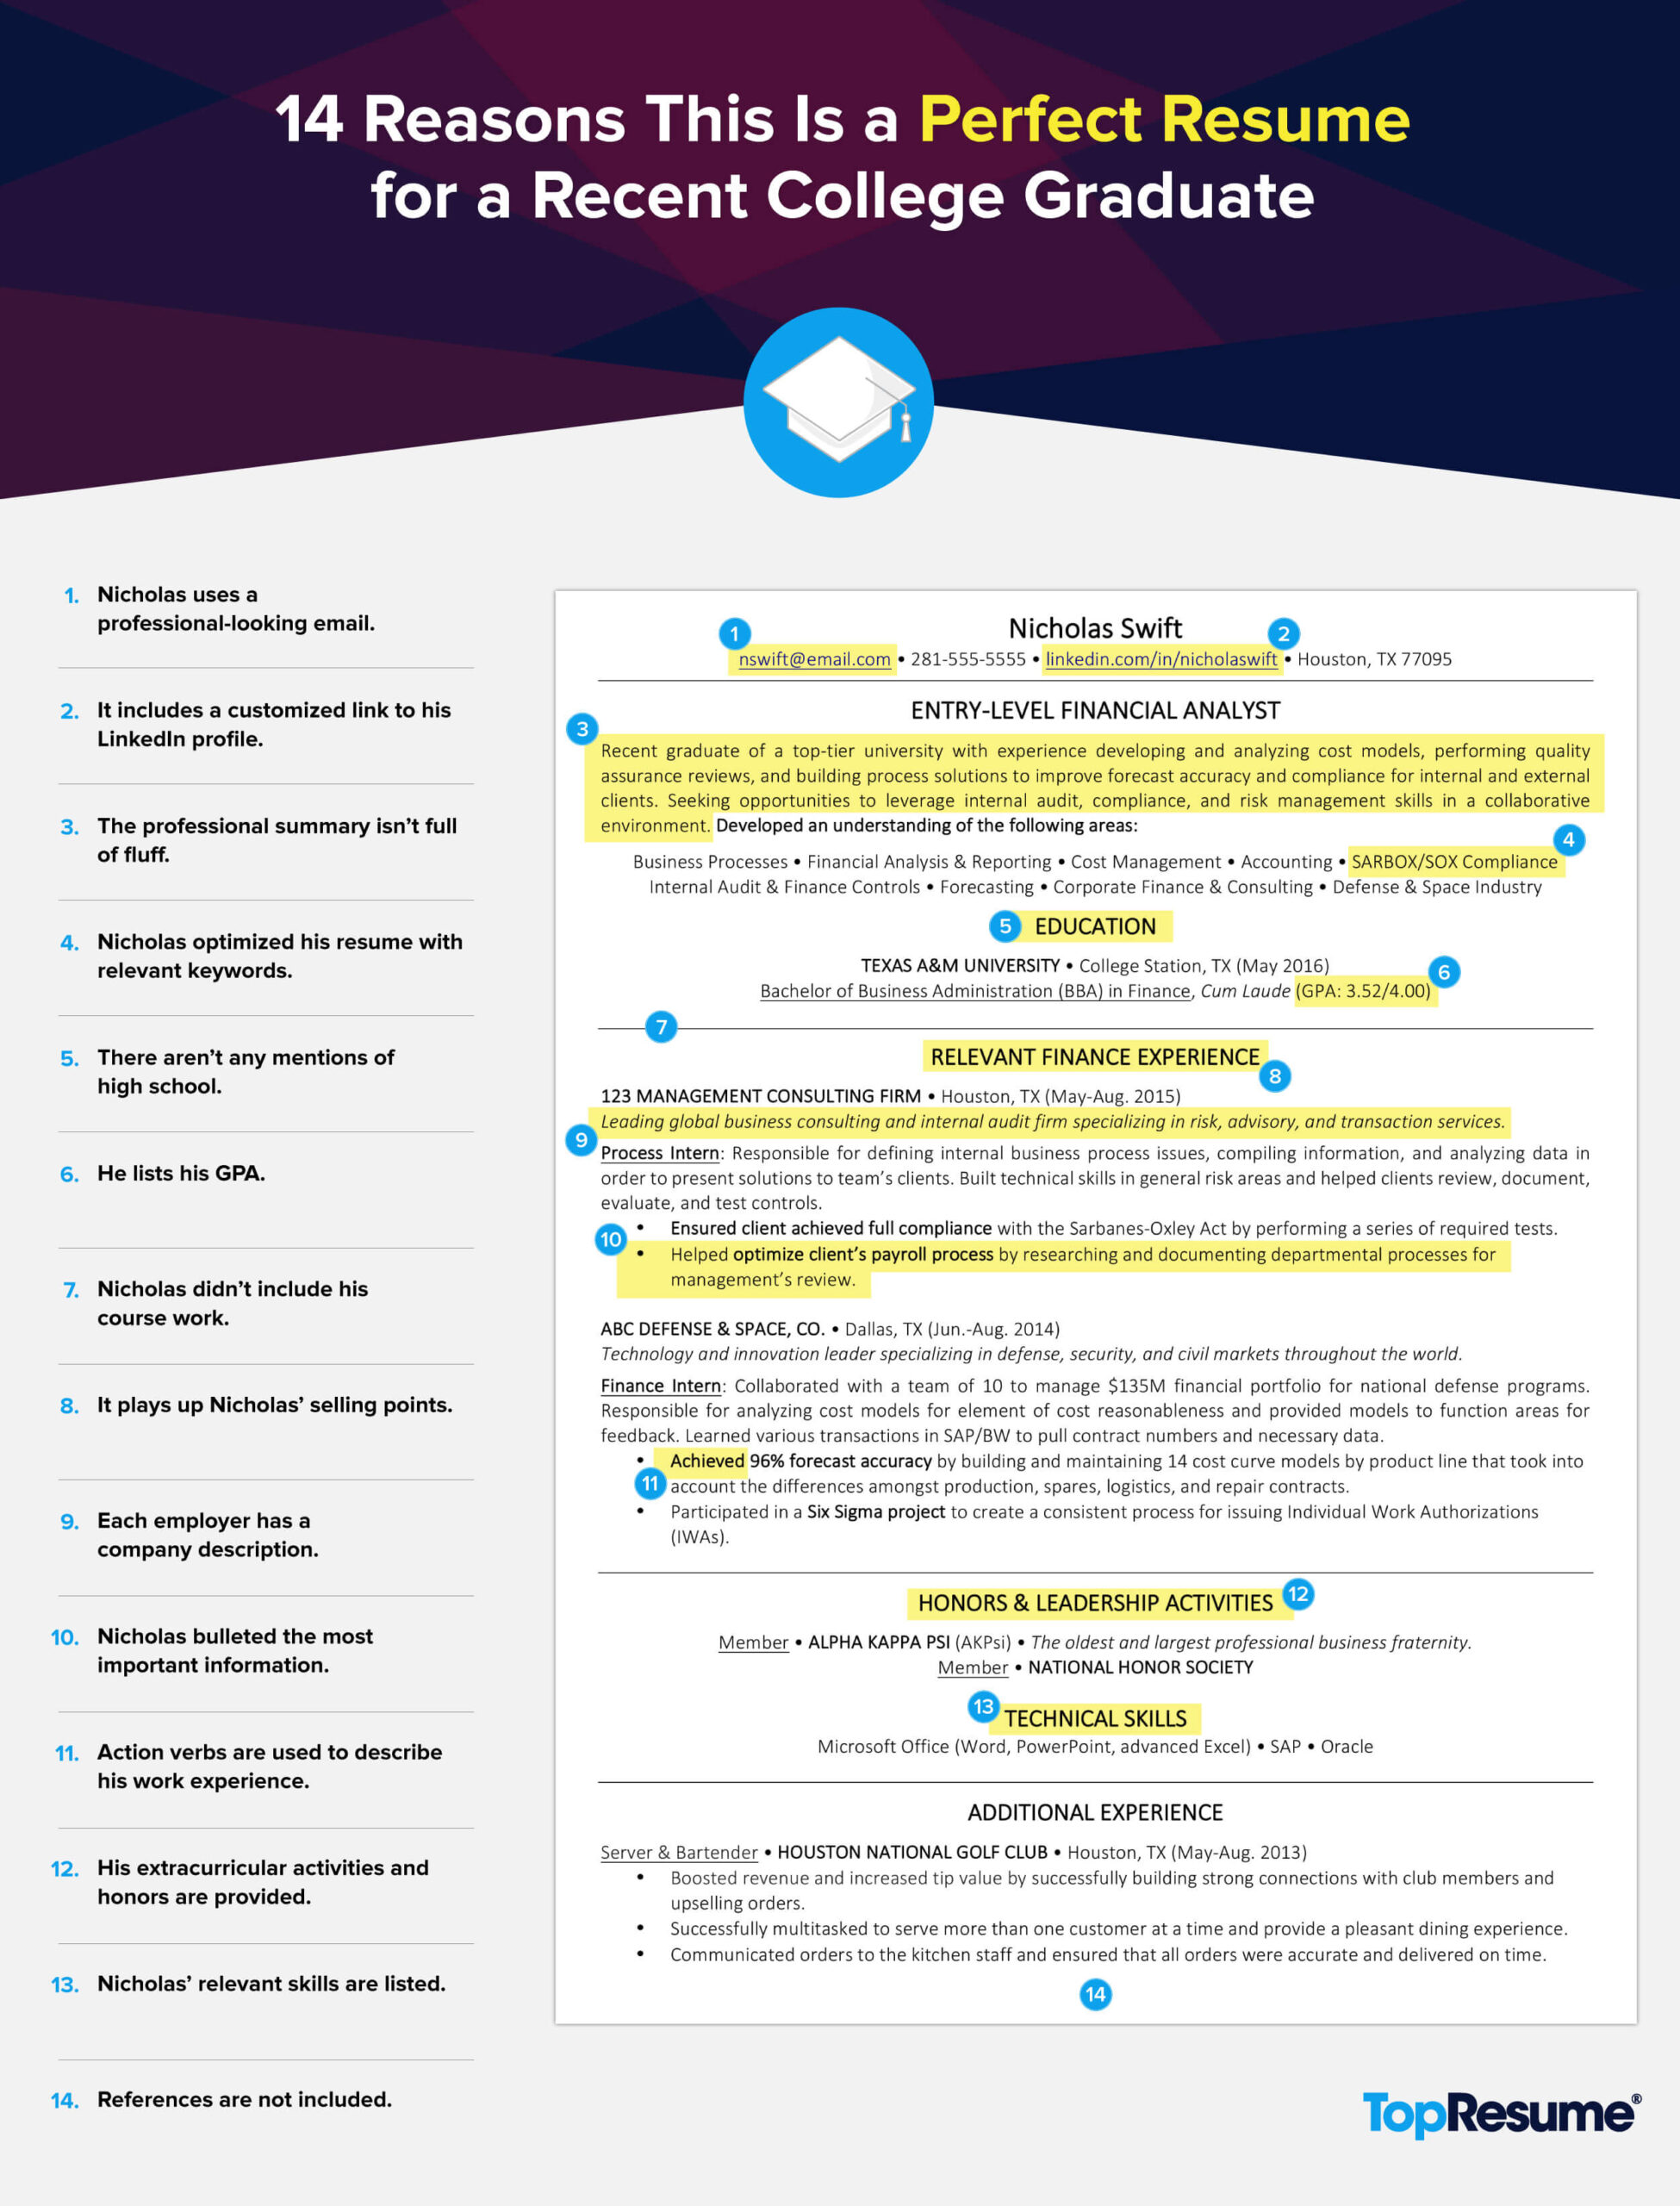 reasons this is perfect recent college graduate resume topresume summary for Resume Perfect Summary For Resume